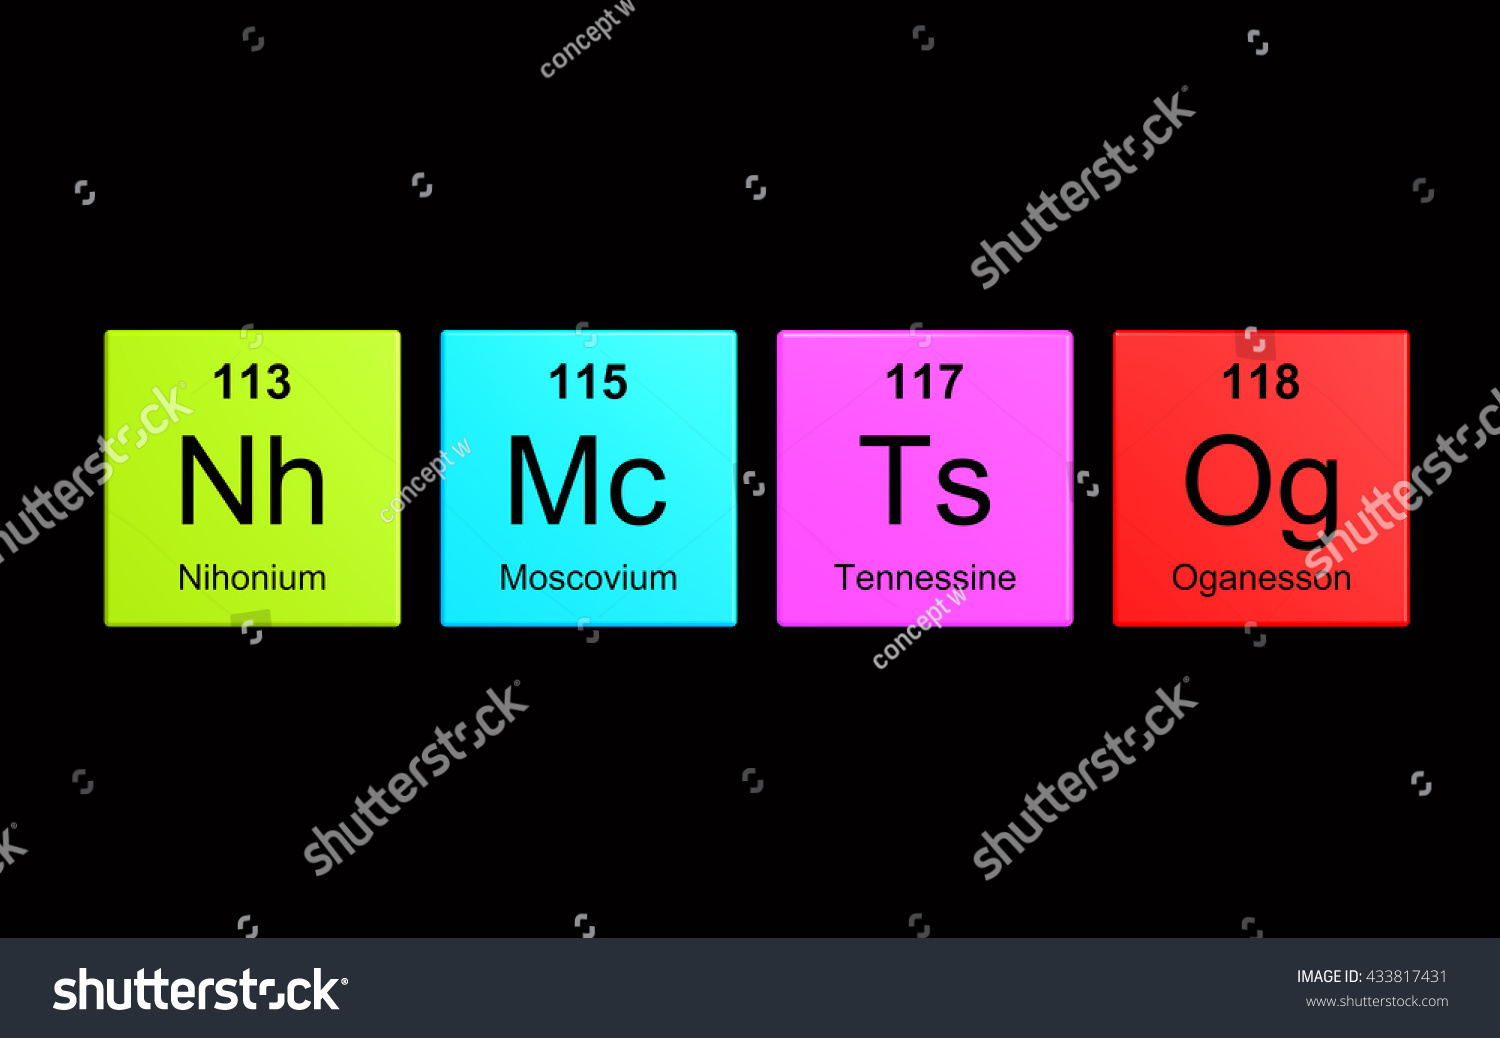 Nihonium 113 moscovium 115 tennessine 115 and oganesso for 118 elements of the periodic table